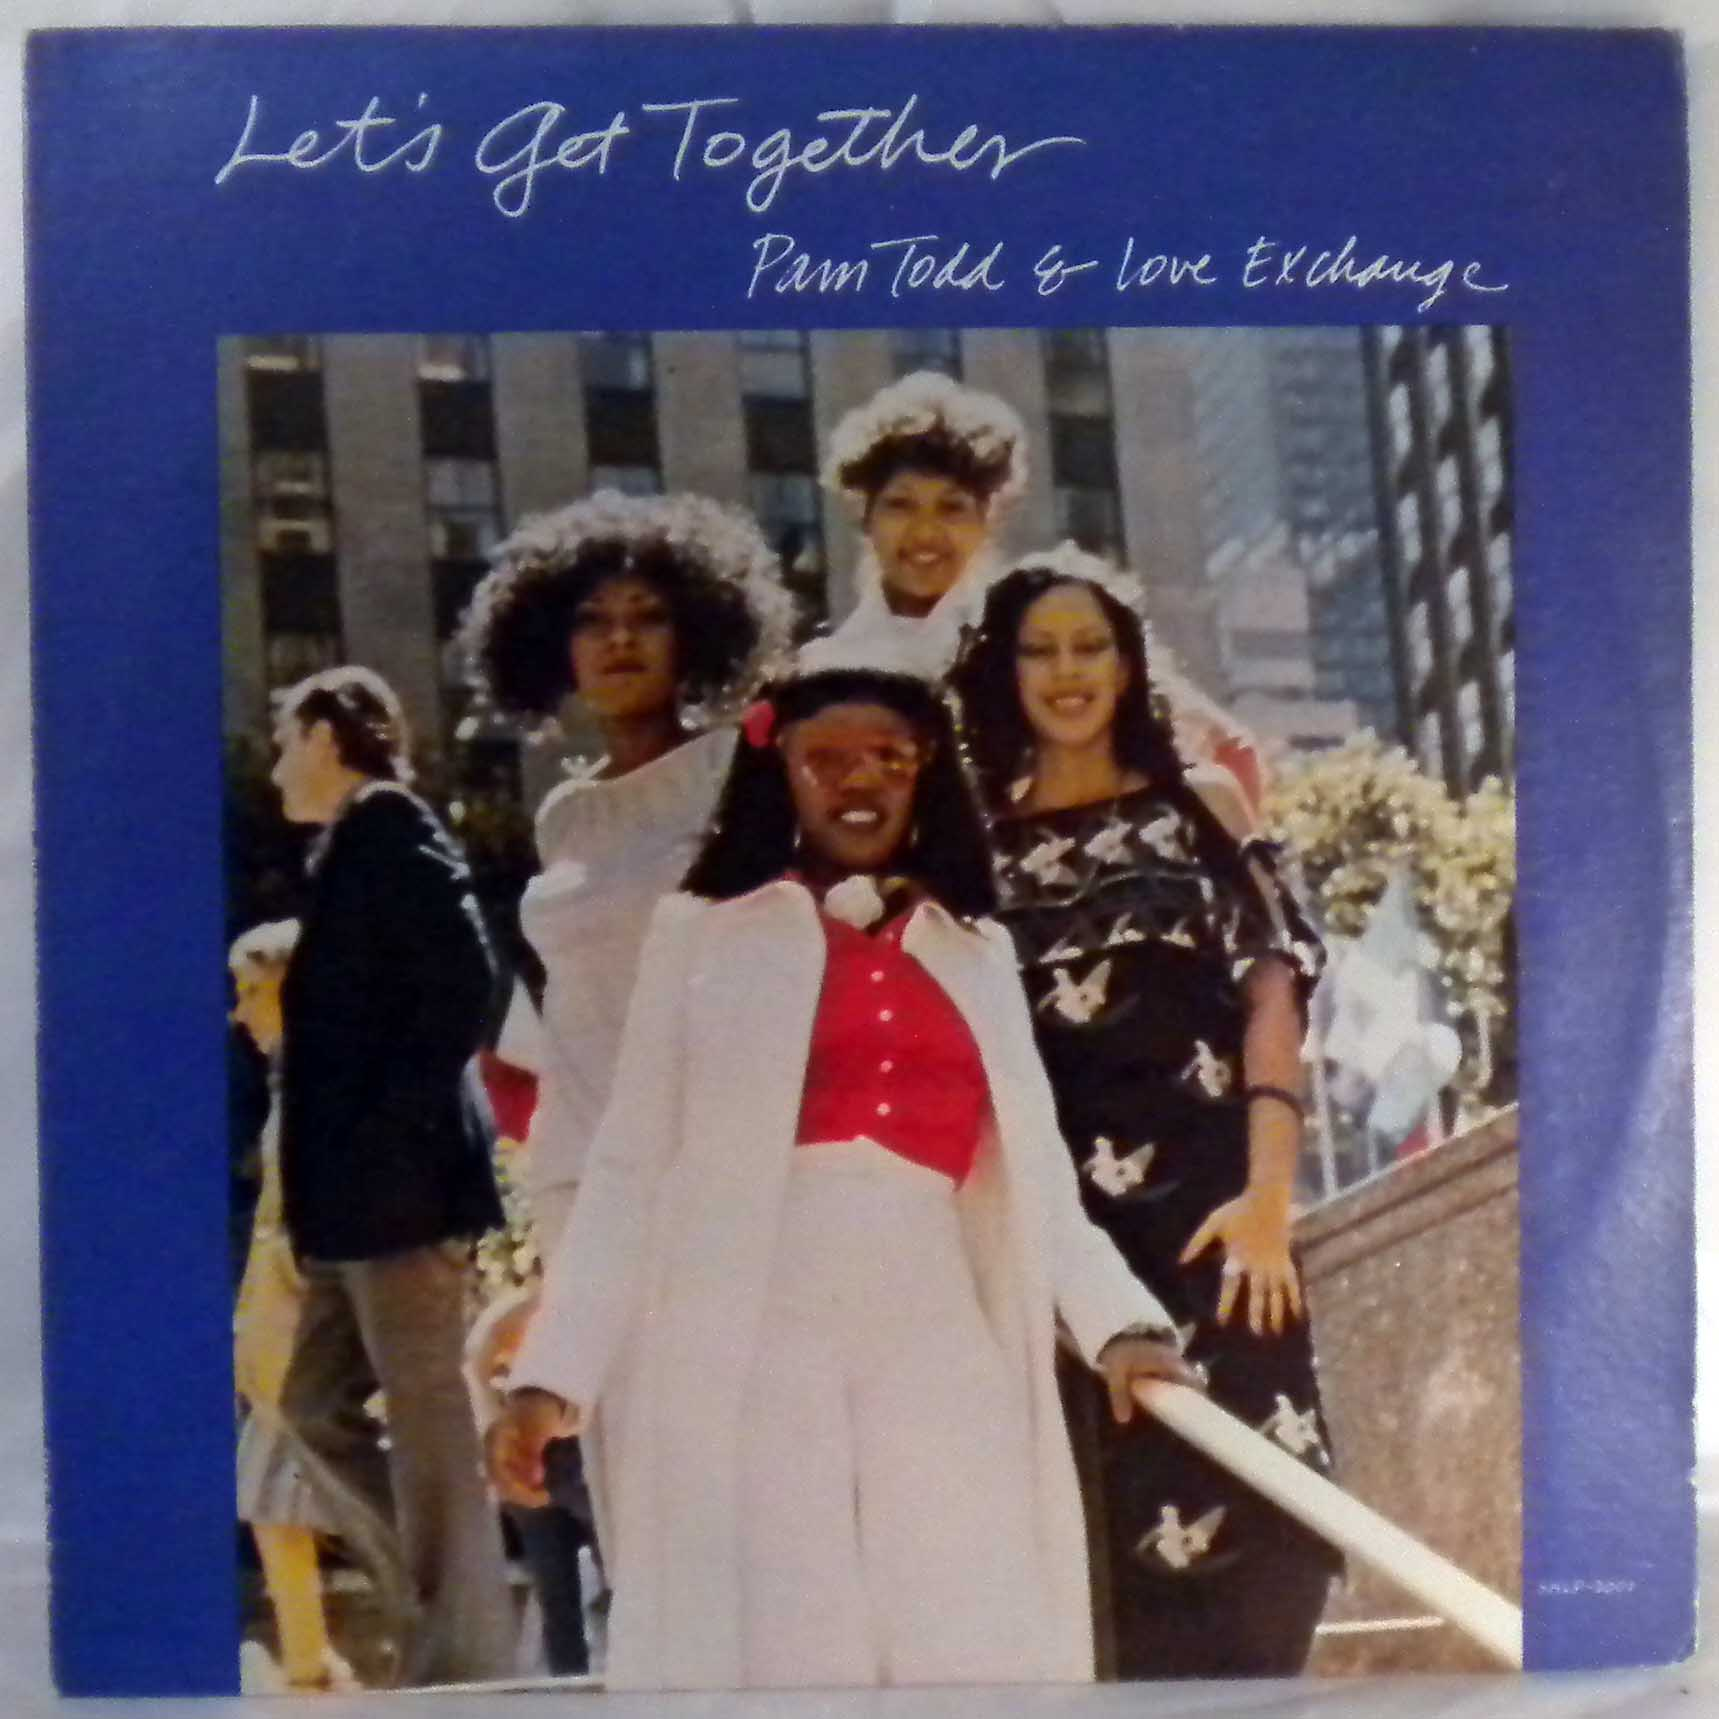 PAM TODD AND LOVE EXCHANGE - Let's get together - LP